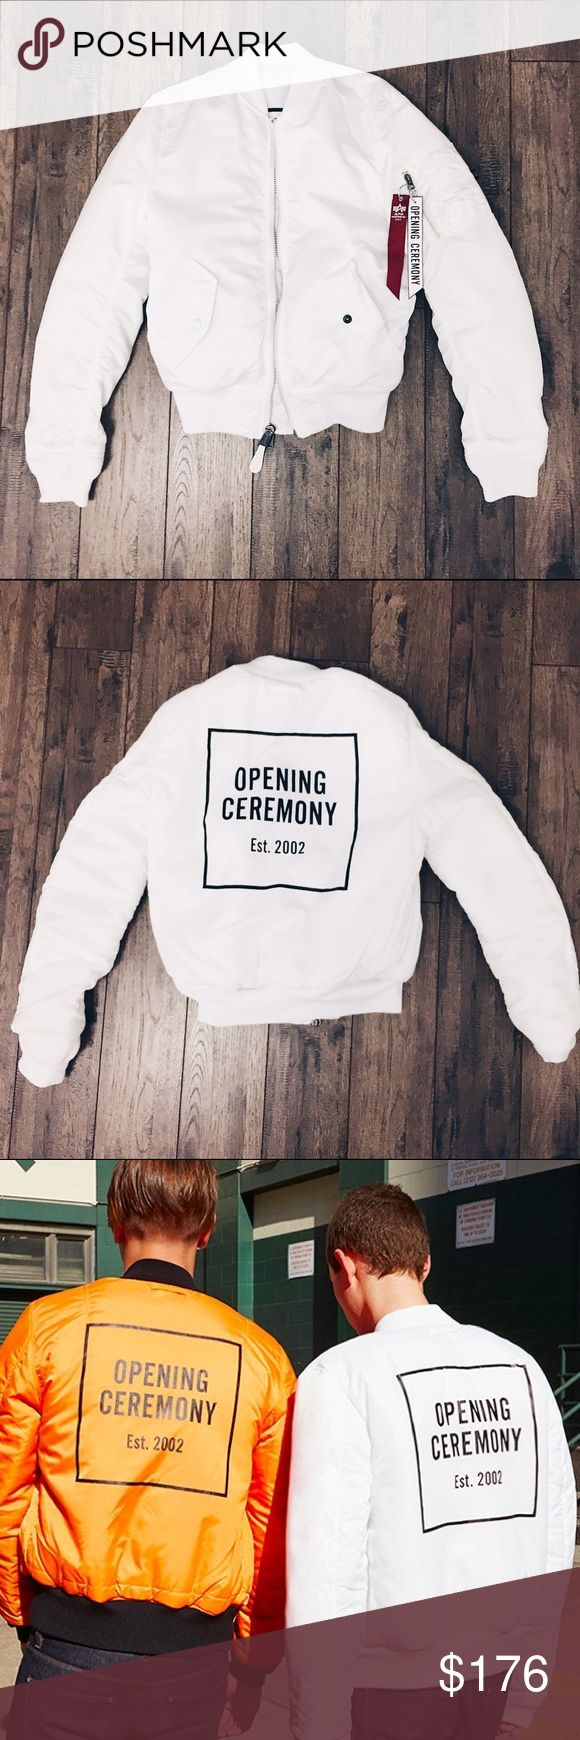 Alpha Industries & Opening Ceremony Bomber Jacket NWOT Alpha Industries for Opening Ceremony Reversible MA-1 Jacket in white. Never worn. Condition: 10/10. Originally $185. SELLING FOR WAY CHEAPER ON DEPOP!! CARRIEMYDO Opening Ceremony Jackets & Coats Bomber & Varsity